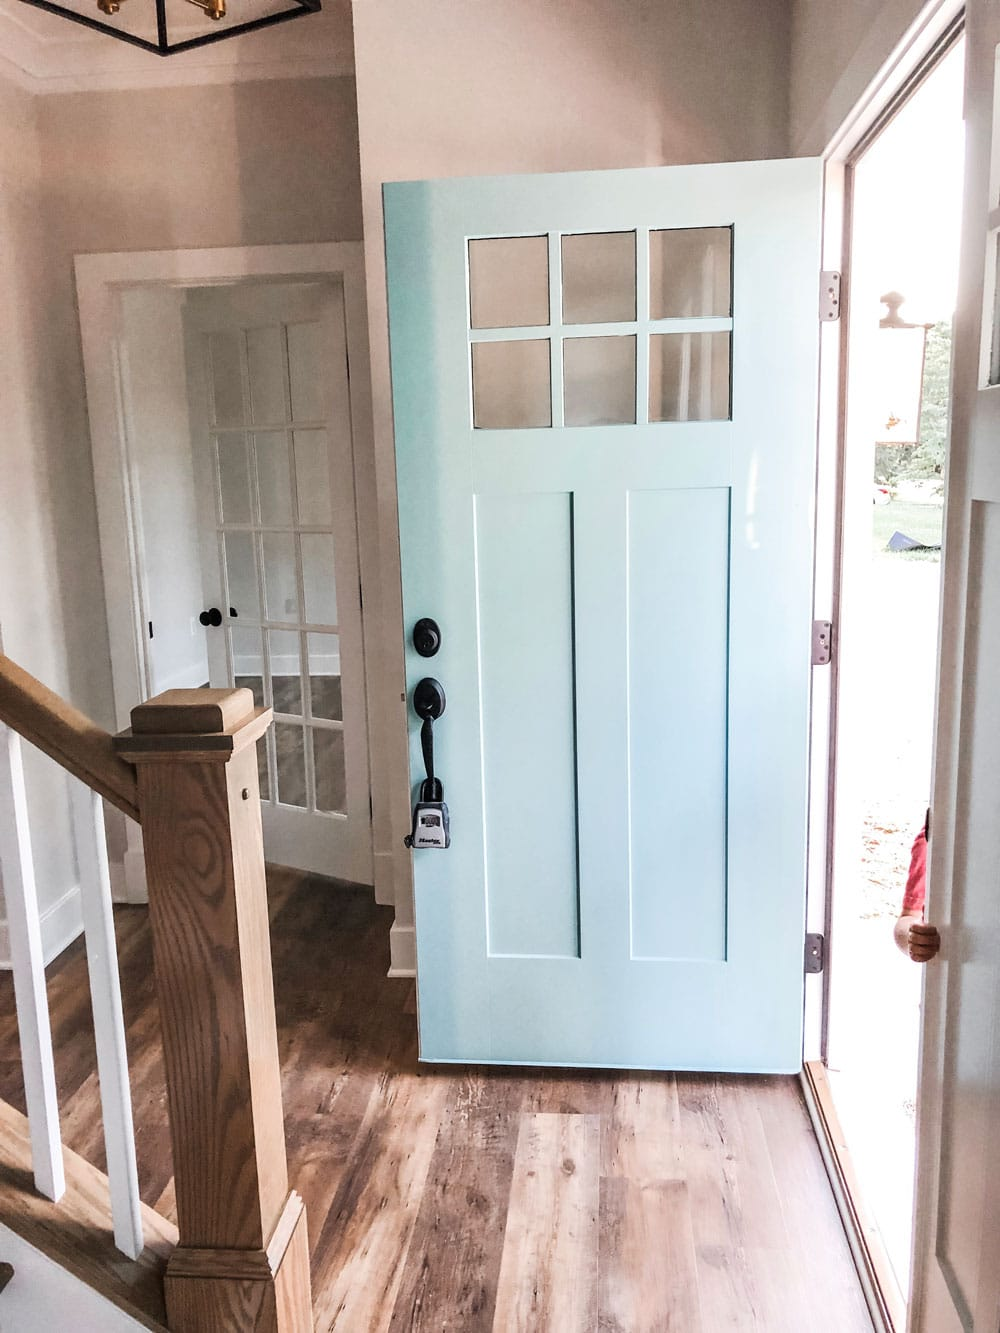 Custom home tour photos. This photo shows the front door opened into the foyer. The front door is a blue color and has a black handle. It has a small 6 pane window at the top of the door.